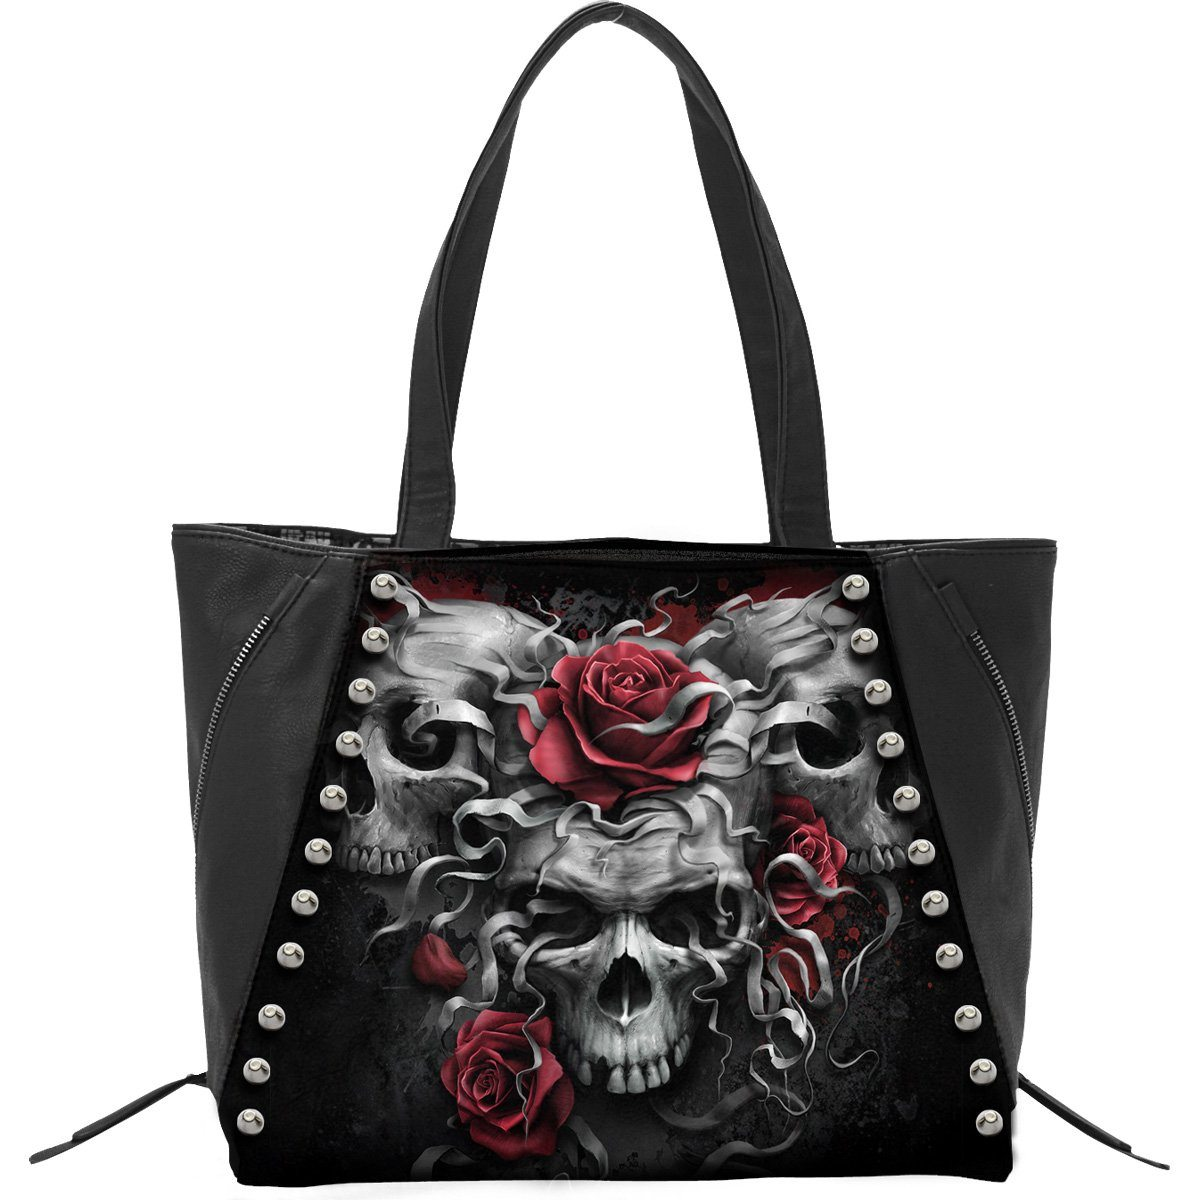 Skulls and Roses Leather Tote Bag